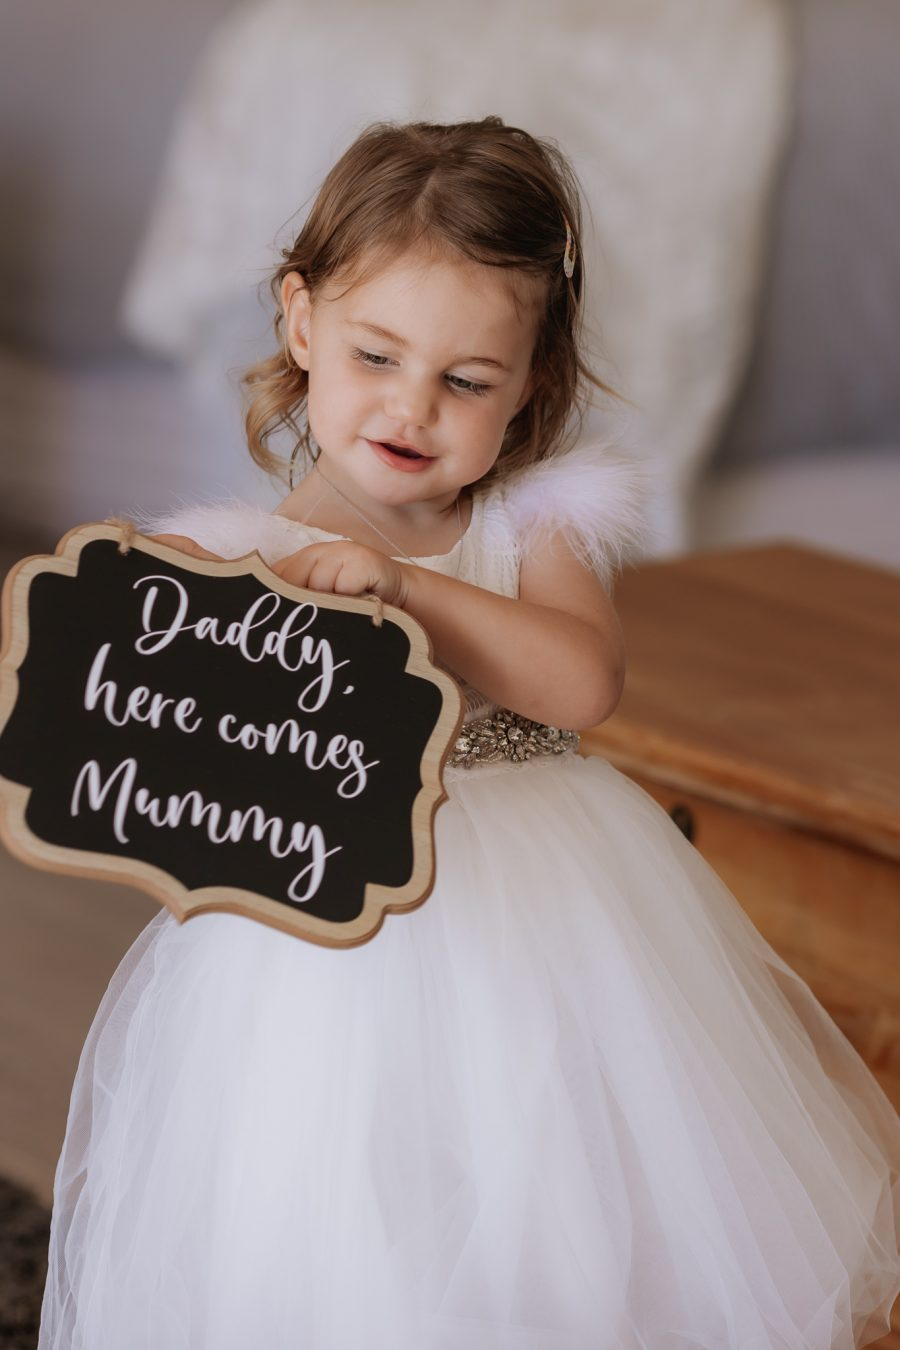 Flowergirl with Daddy here comes Mummy sign